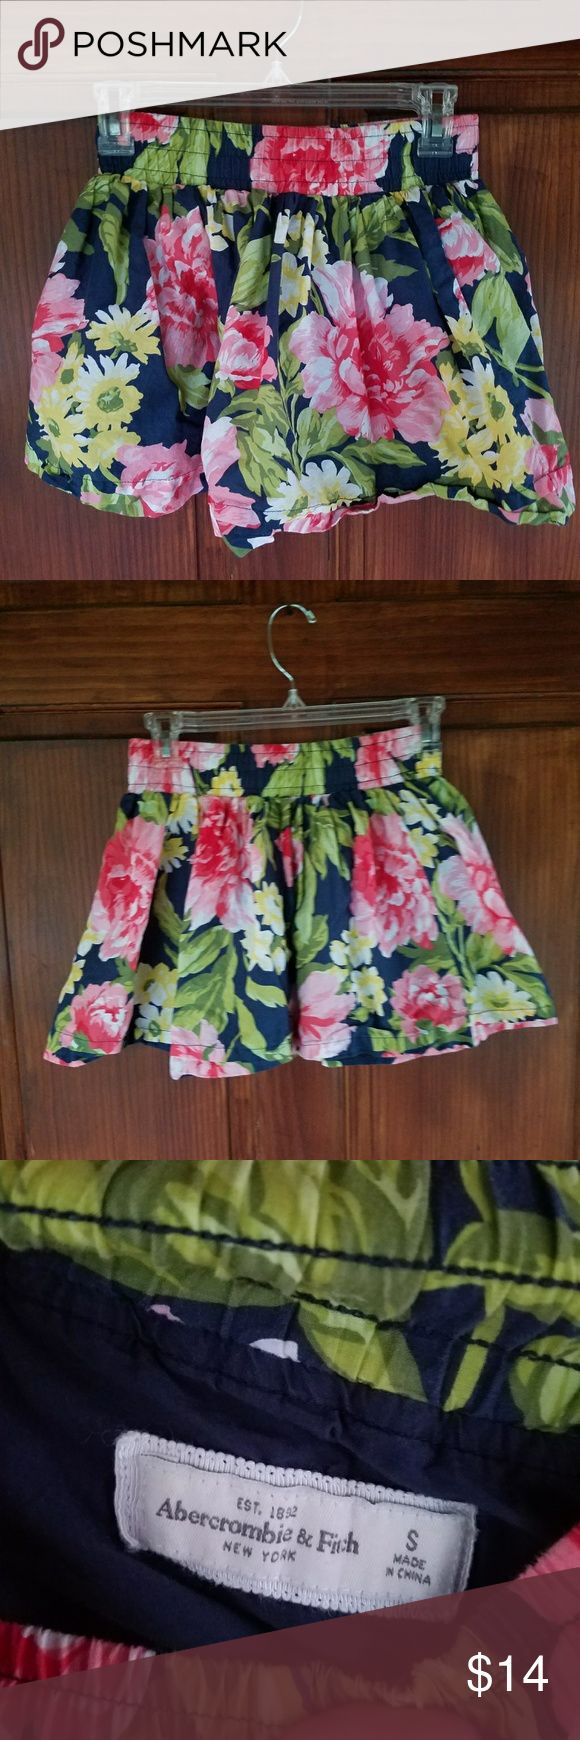 Abercrombie and Fitch Skirt Small Small Abercrombie and Fitch Skirt. Floral design. Elastic band. Abercrombie & Fitch Skirts Mini